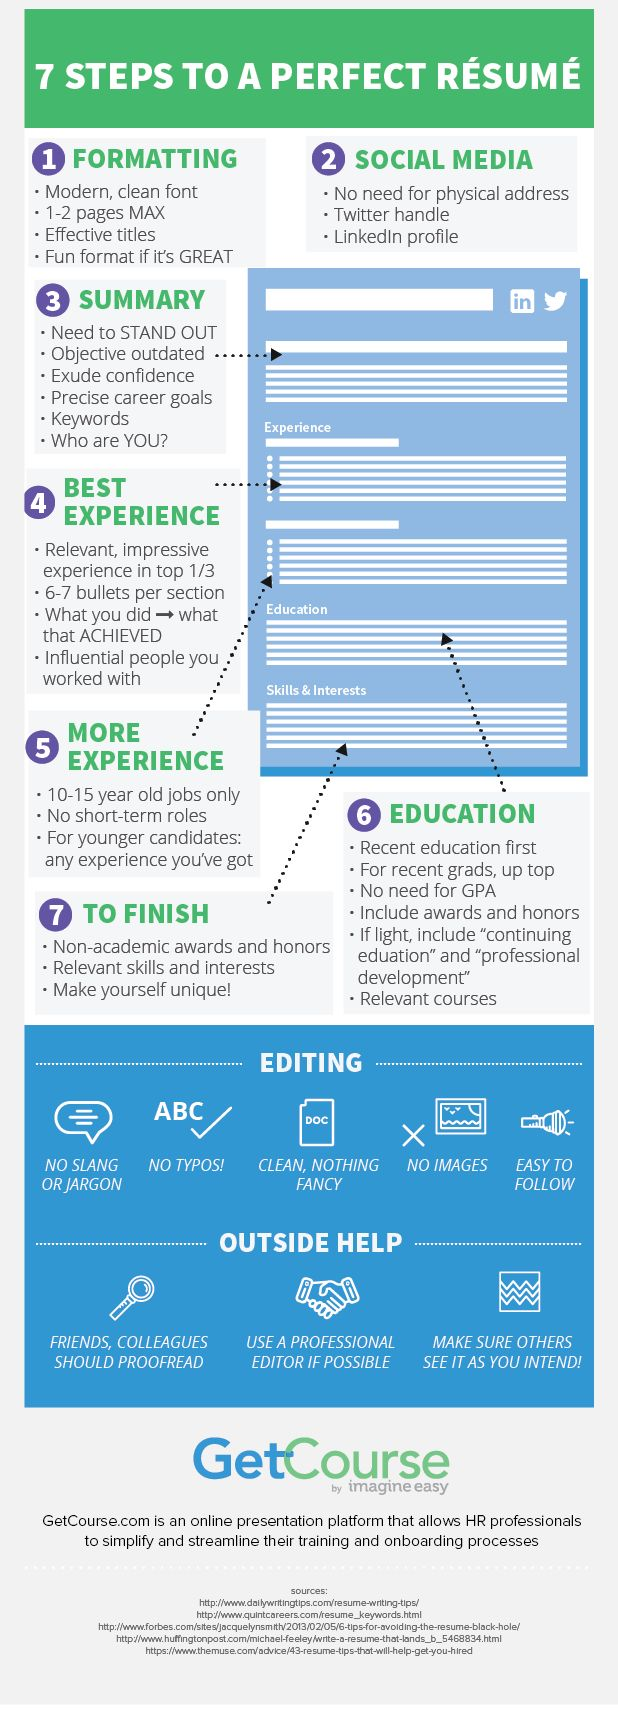 7 Steps to a Perfect Resume #Infographic